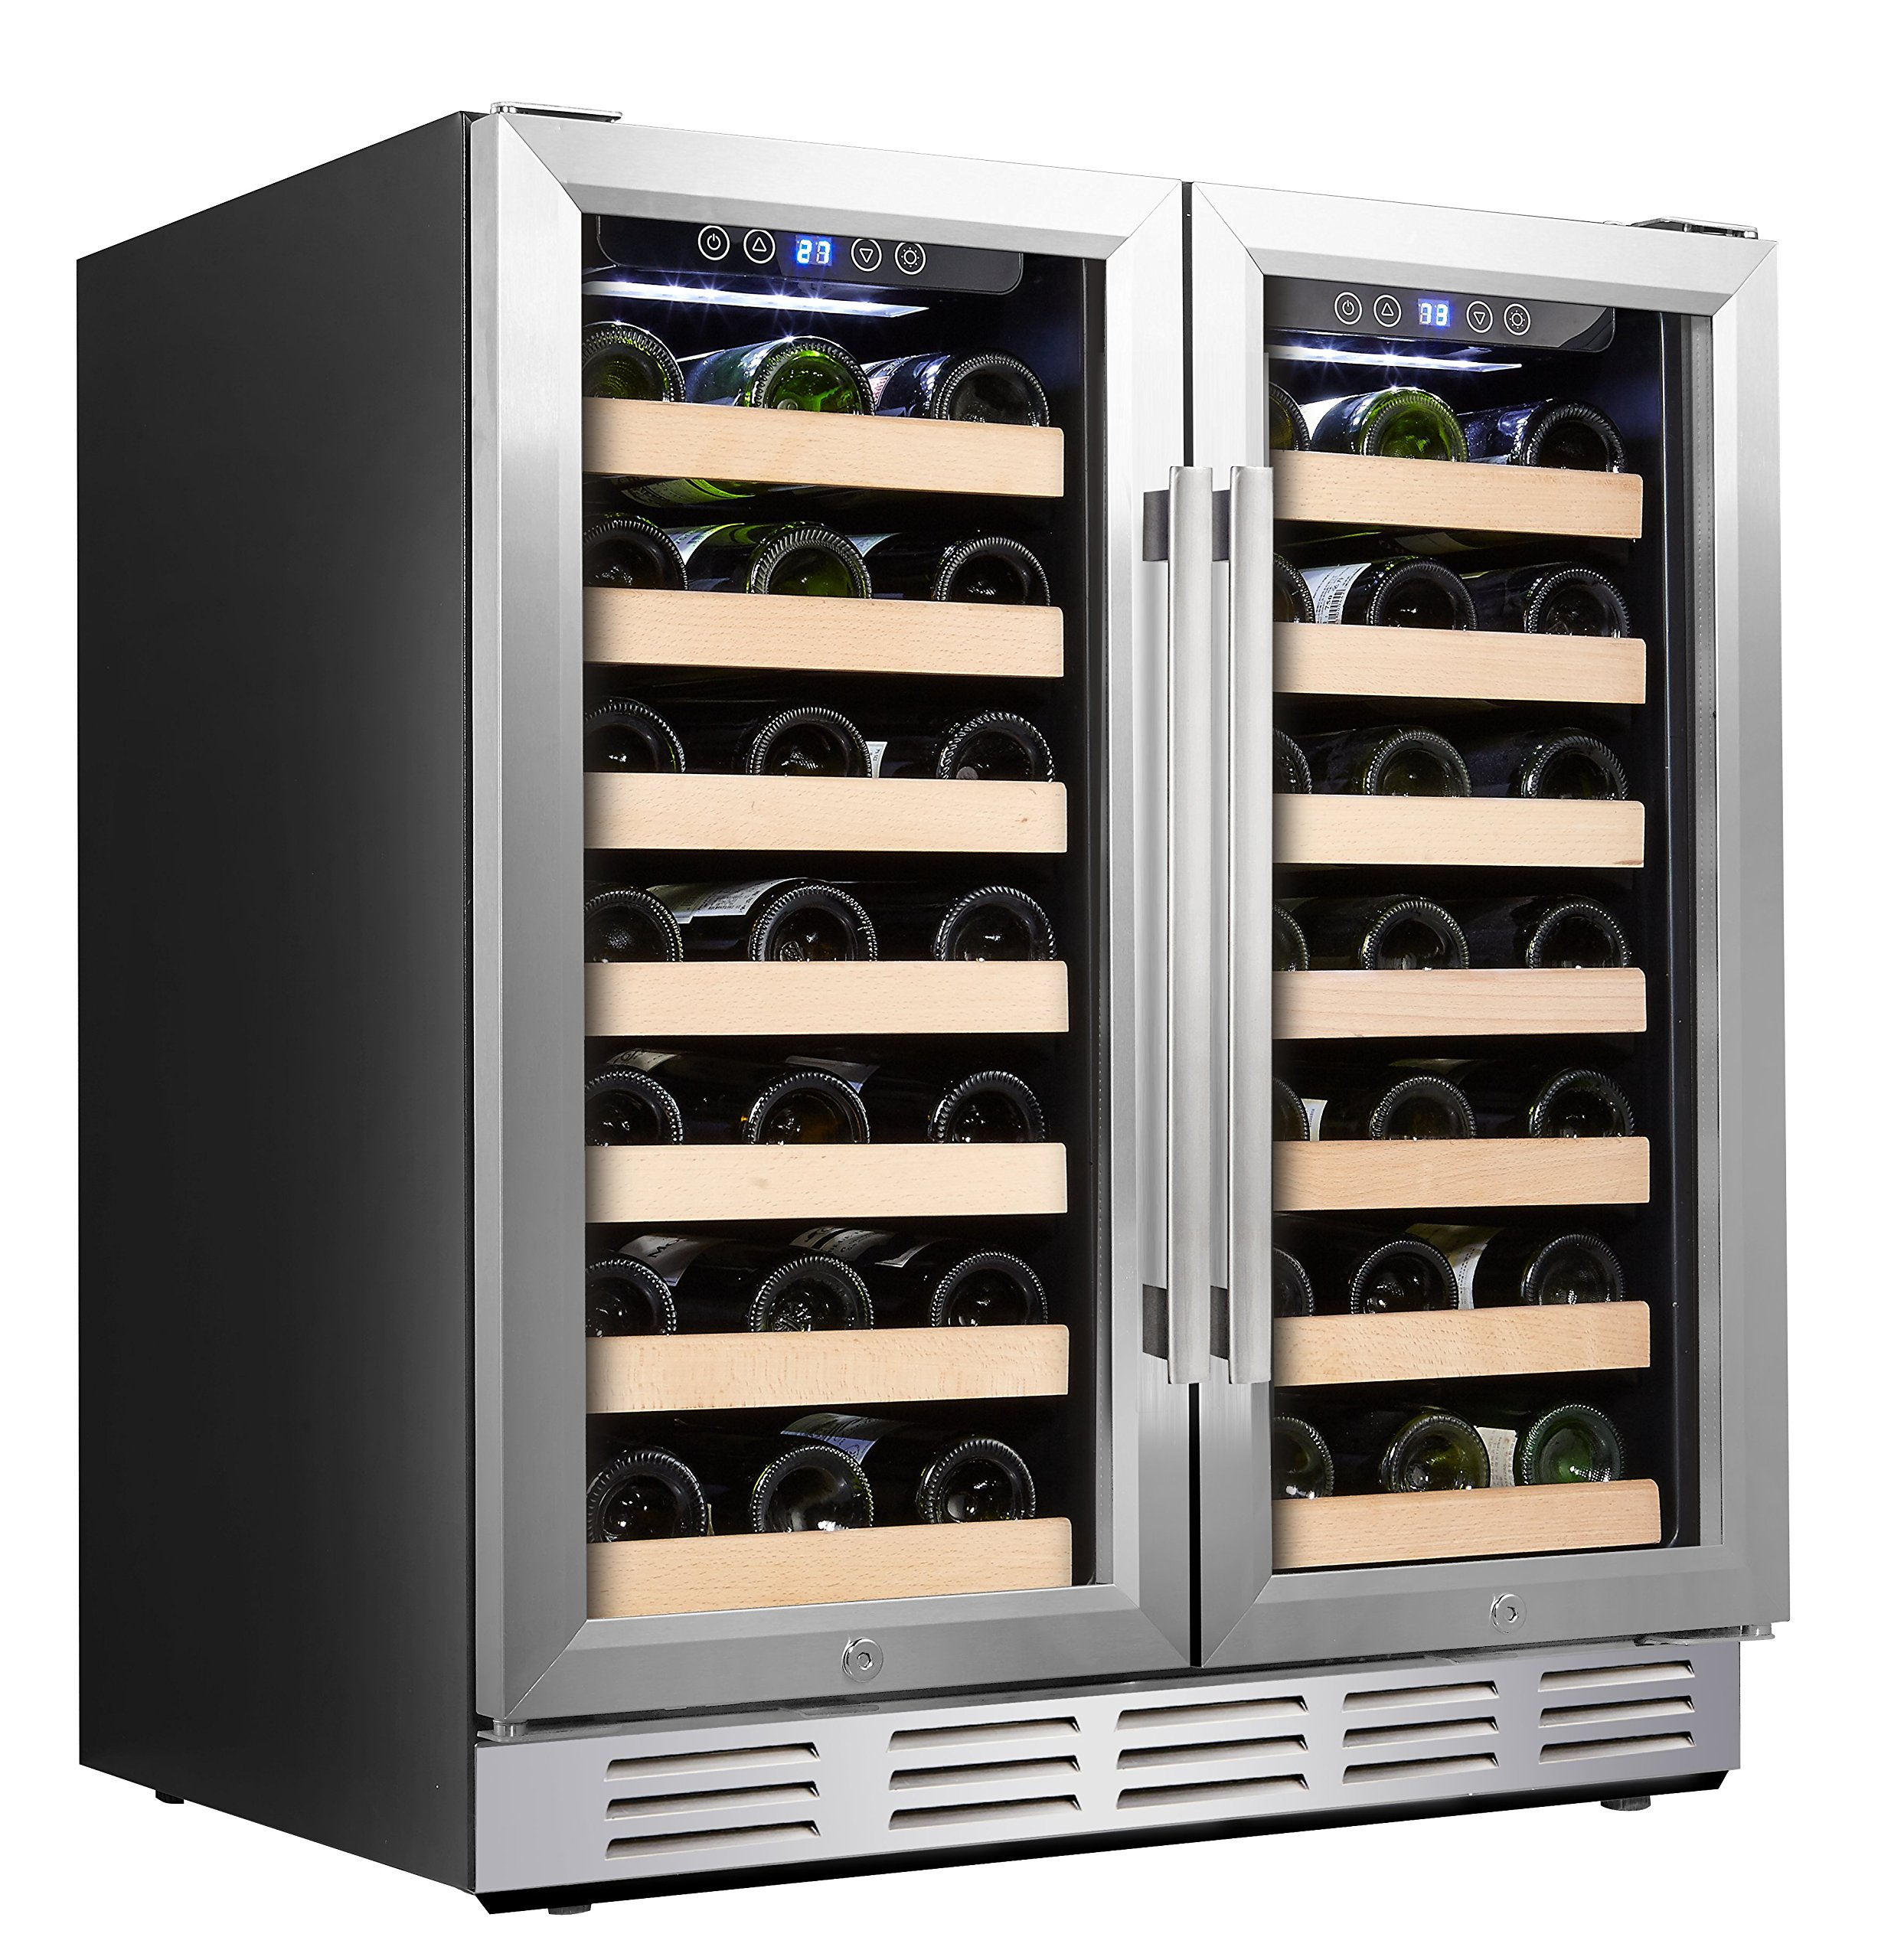 Kalamera 30'' Wine Cooler 66 Bottle Dual Zone Built-in and Freestanding with Stainless Steel and Glass French-Door Style